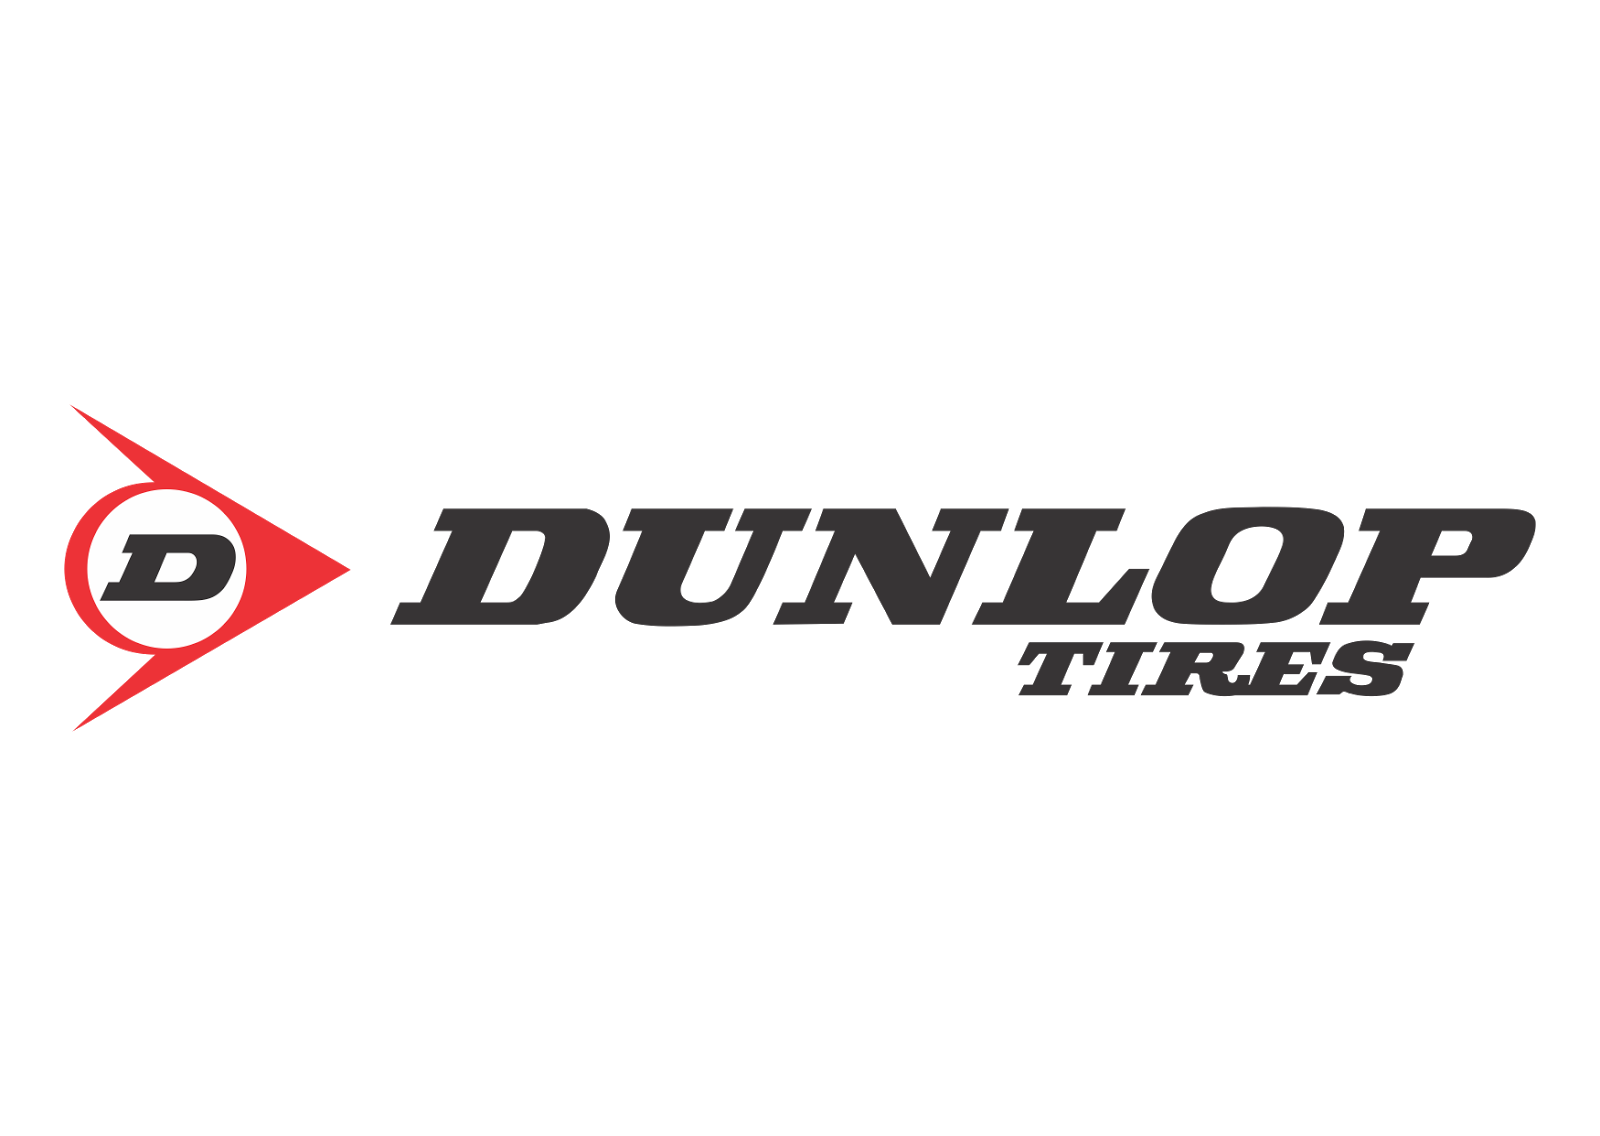 Dunlop Tires Logo Vector